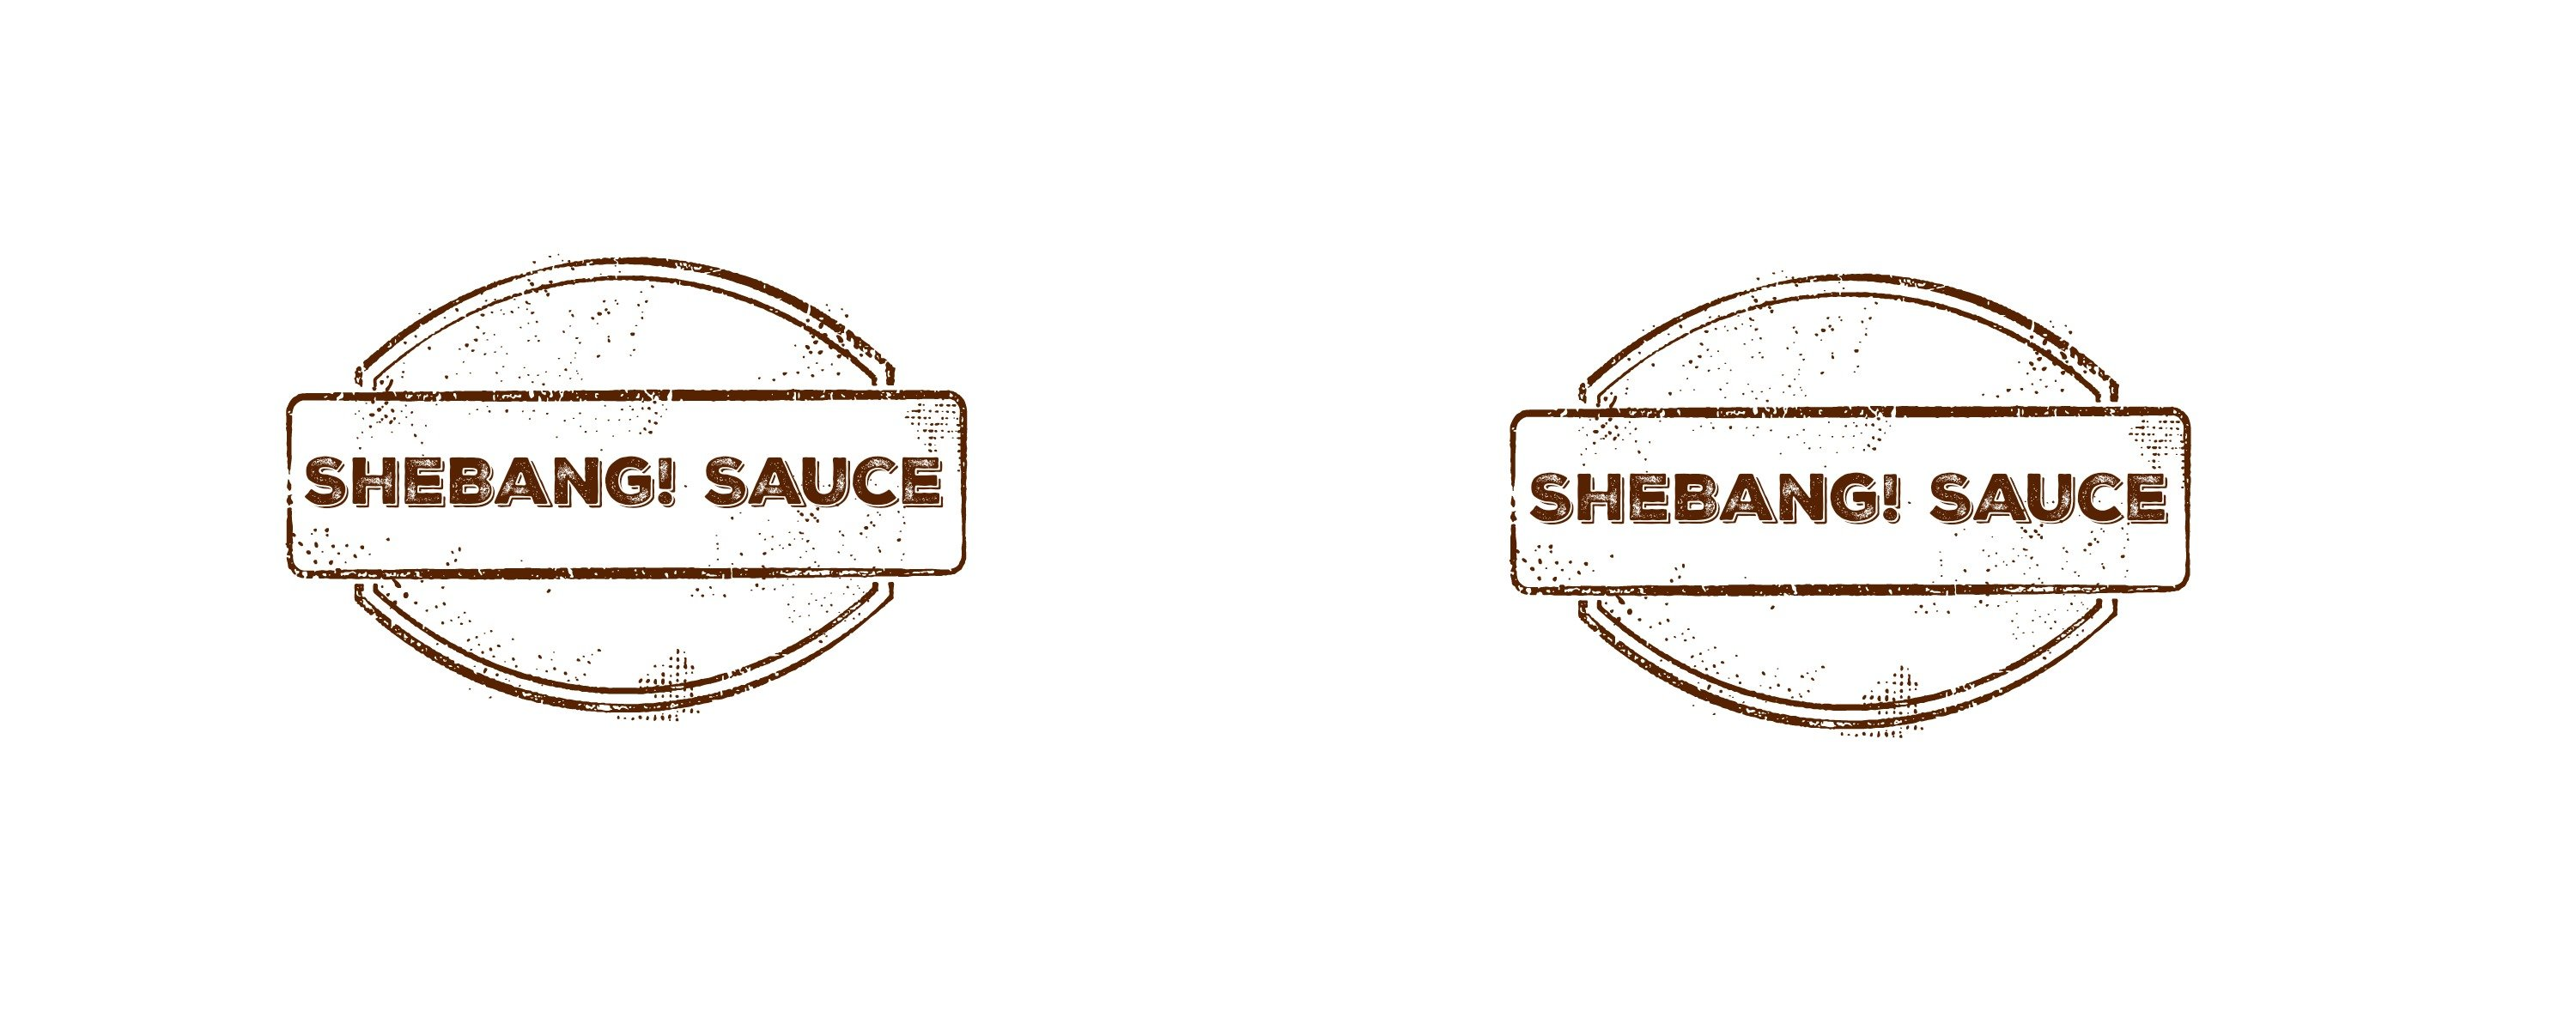 Get your grills ready because this Homemade Bbq Sauce Recipe is great for just about anything! This summer barbecue sauce is sweet and tangy. I call it SheBang! Sauce because it is good on the whole shebang! Get your own Free Printable Label for your SheBang! Sauce!